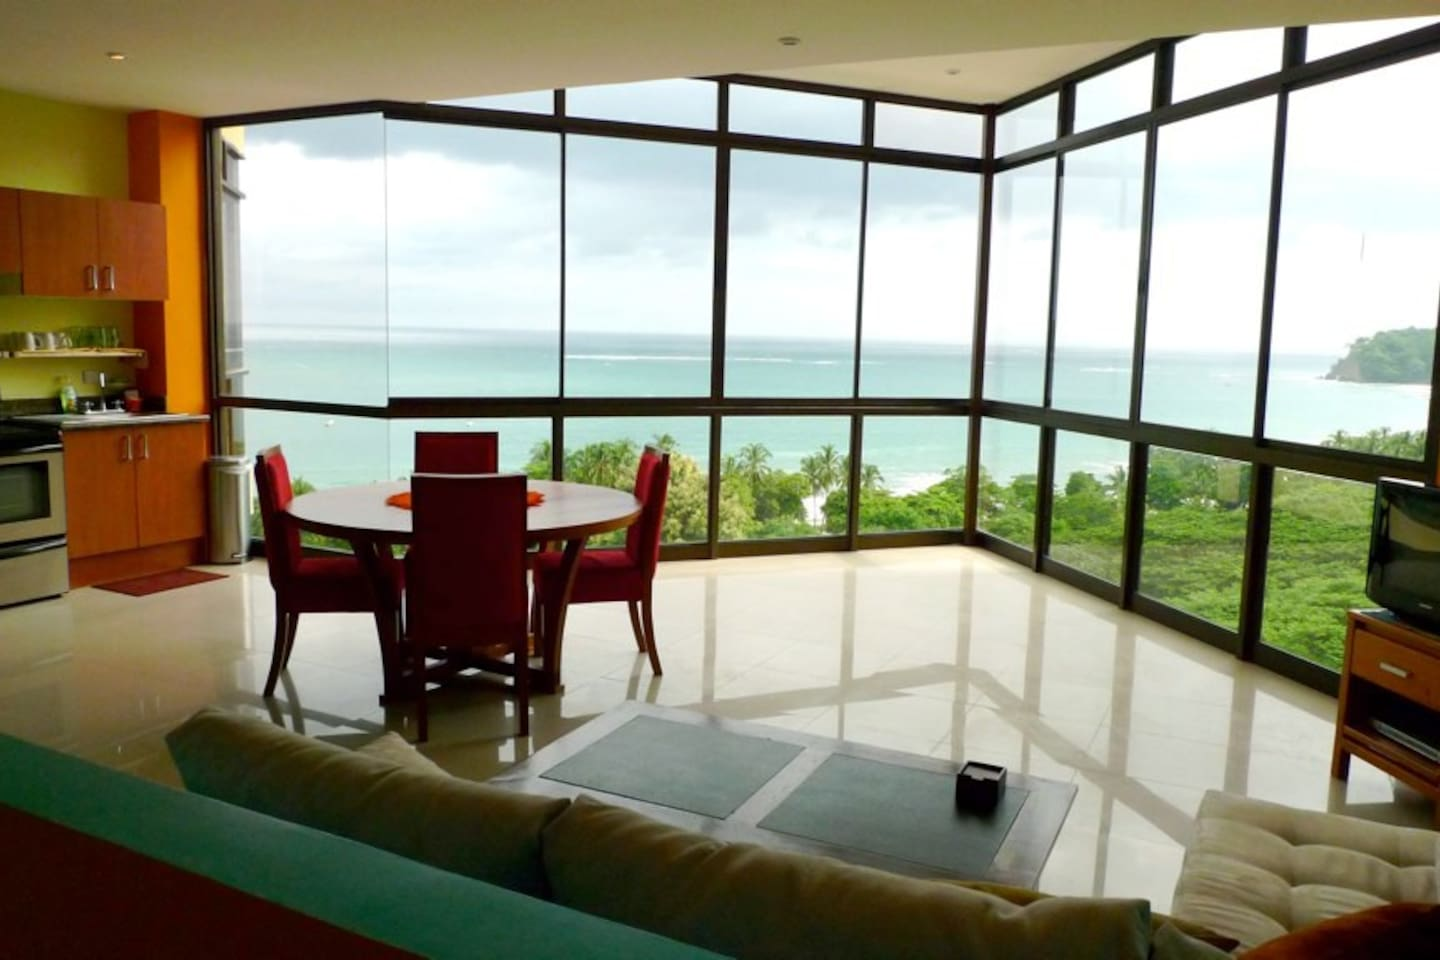 Spectacular 180 degree ocean view when you walk into the condo.